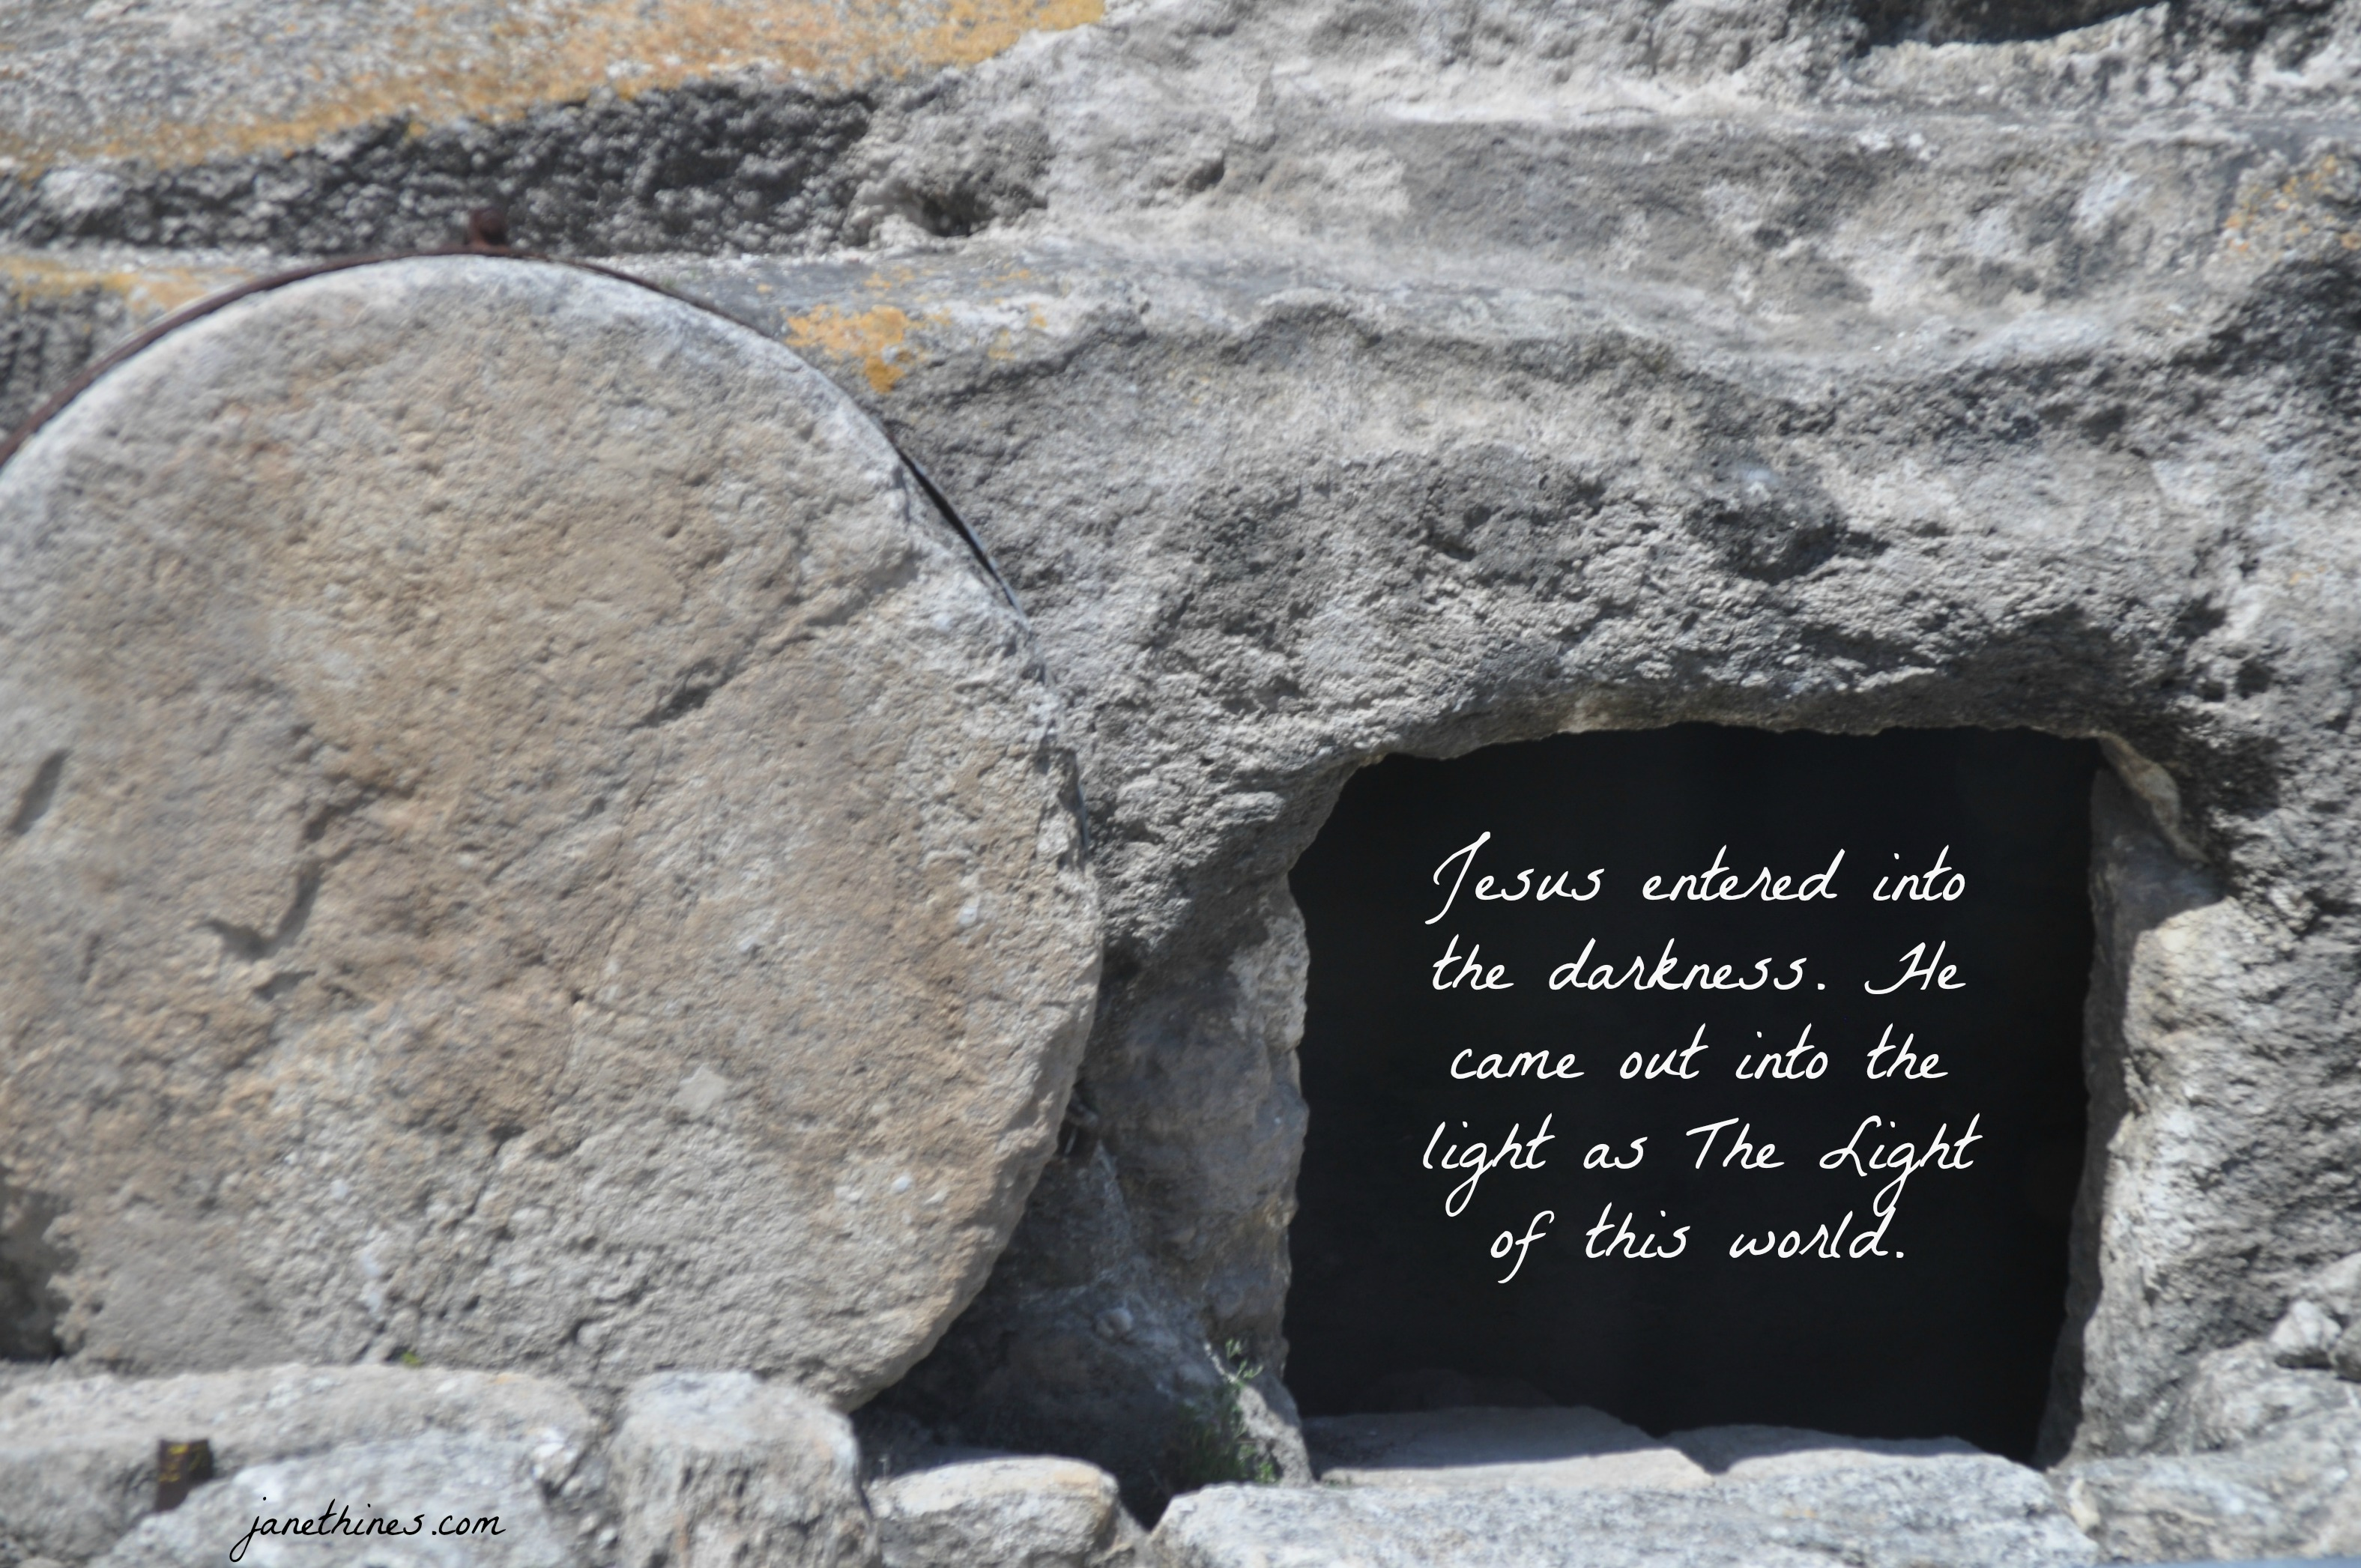 Tomb in Israel - into darkness into light